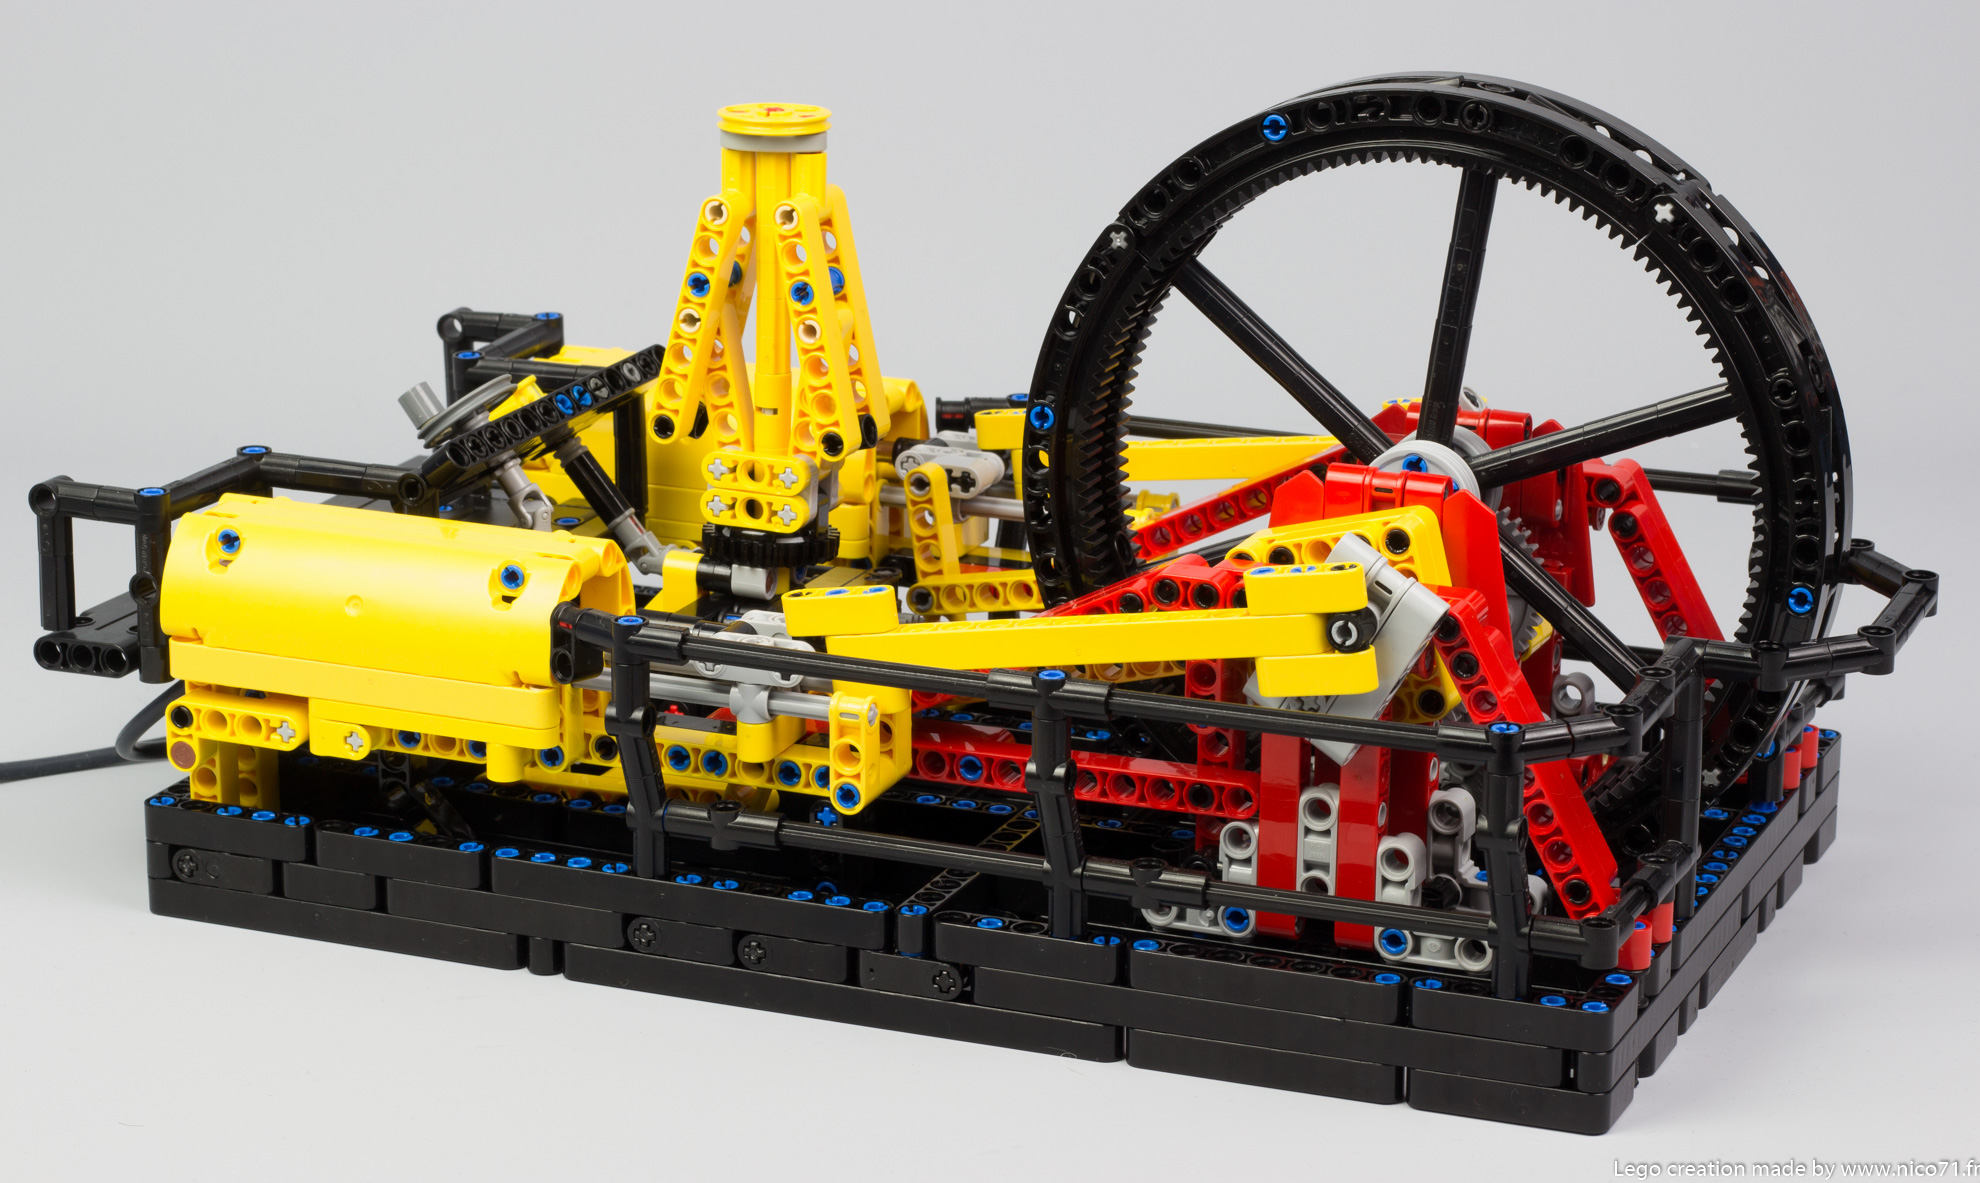 Lego-Technic-Steam-Engine-Machine-1